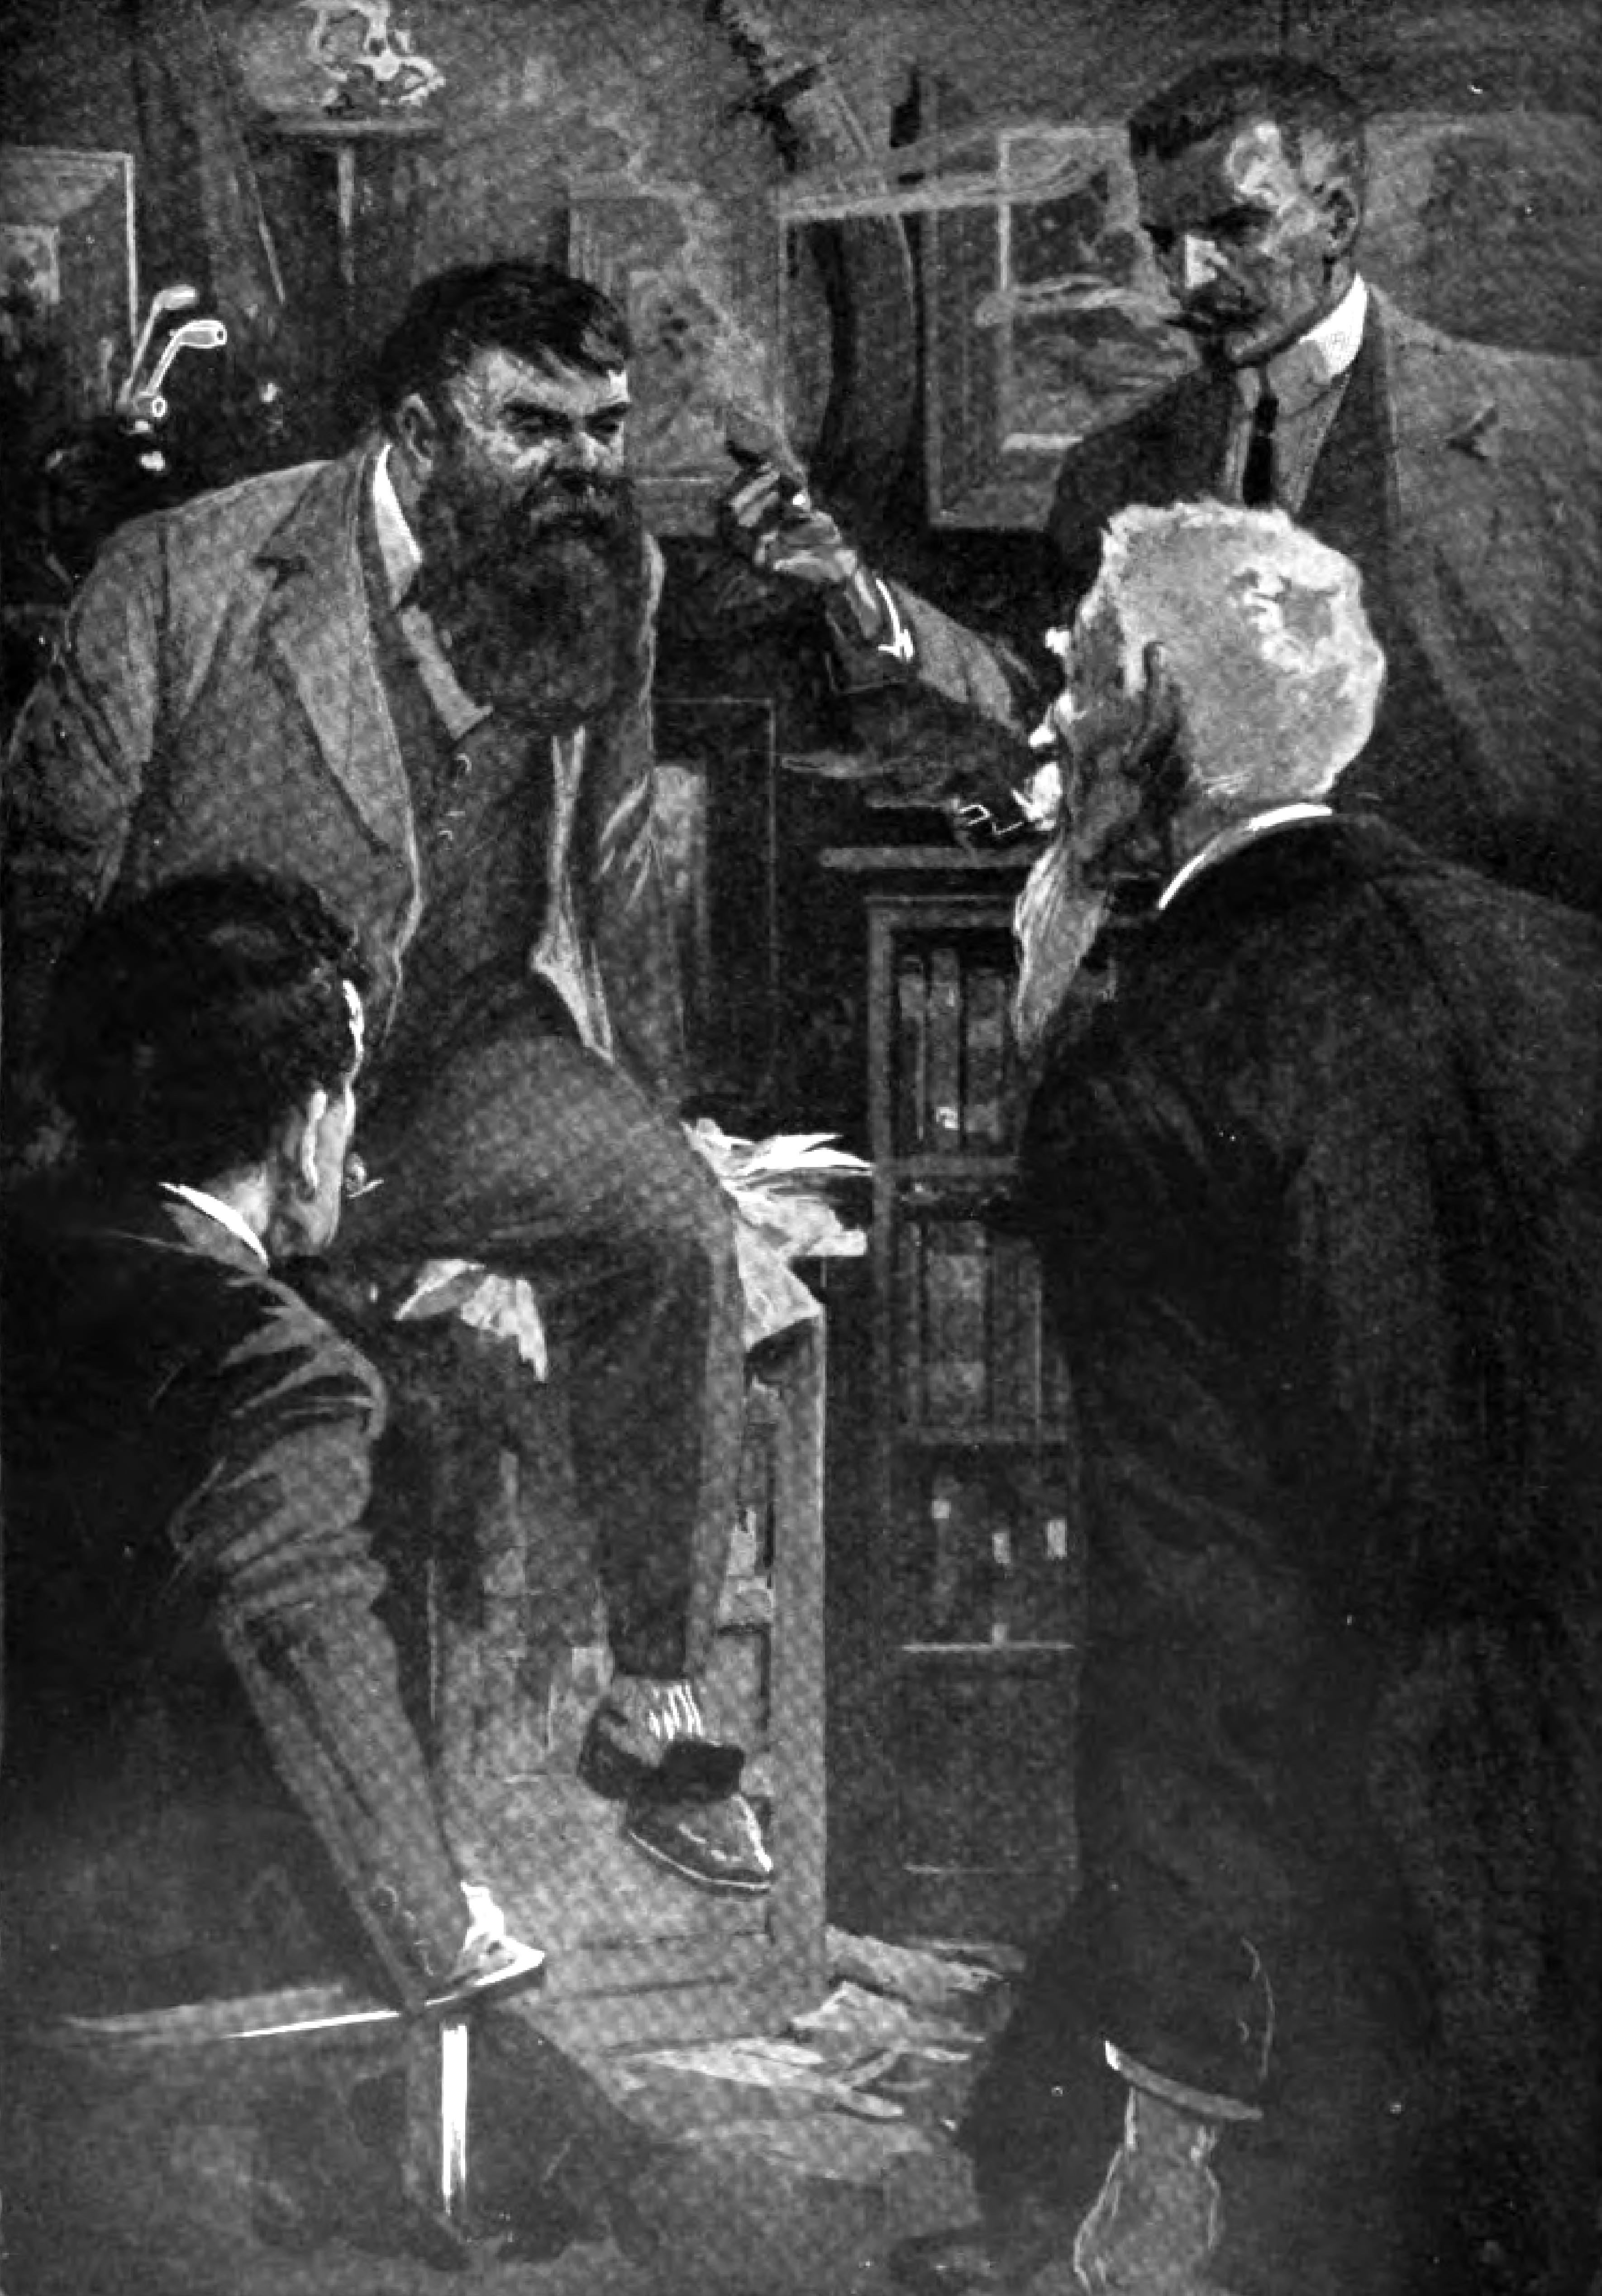 Professor Challenger by Harry Rountree in the novella The Poison Belt published in The Strand Magazine Professor Challenger.jpg